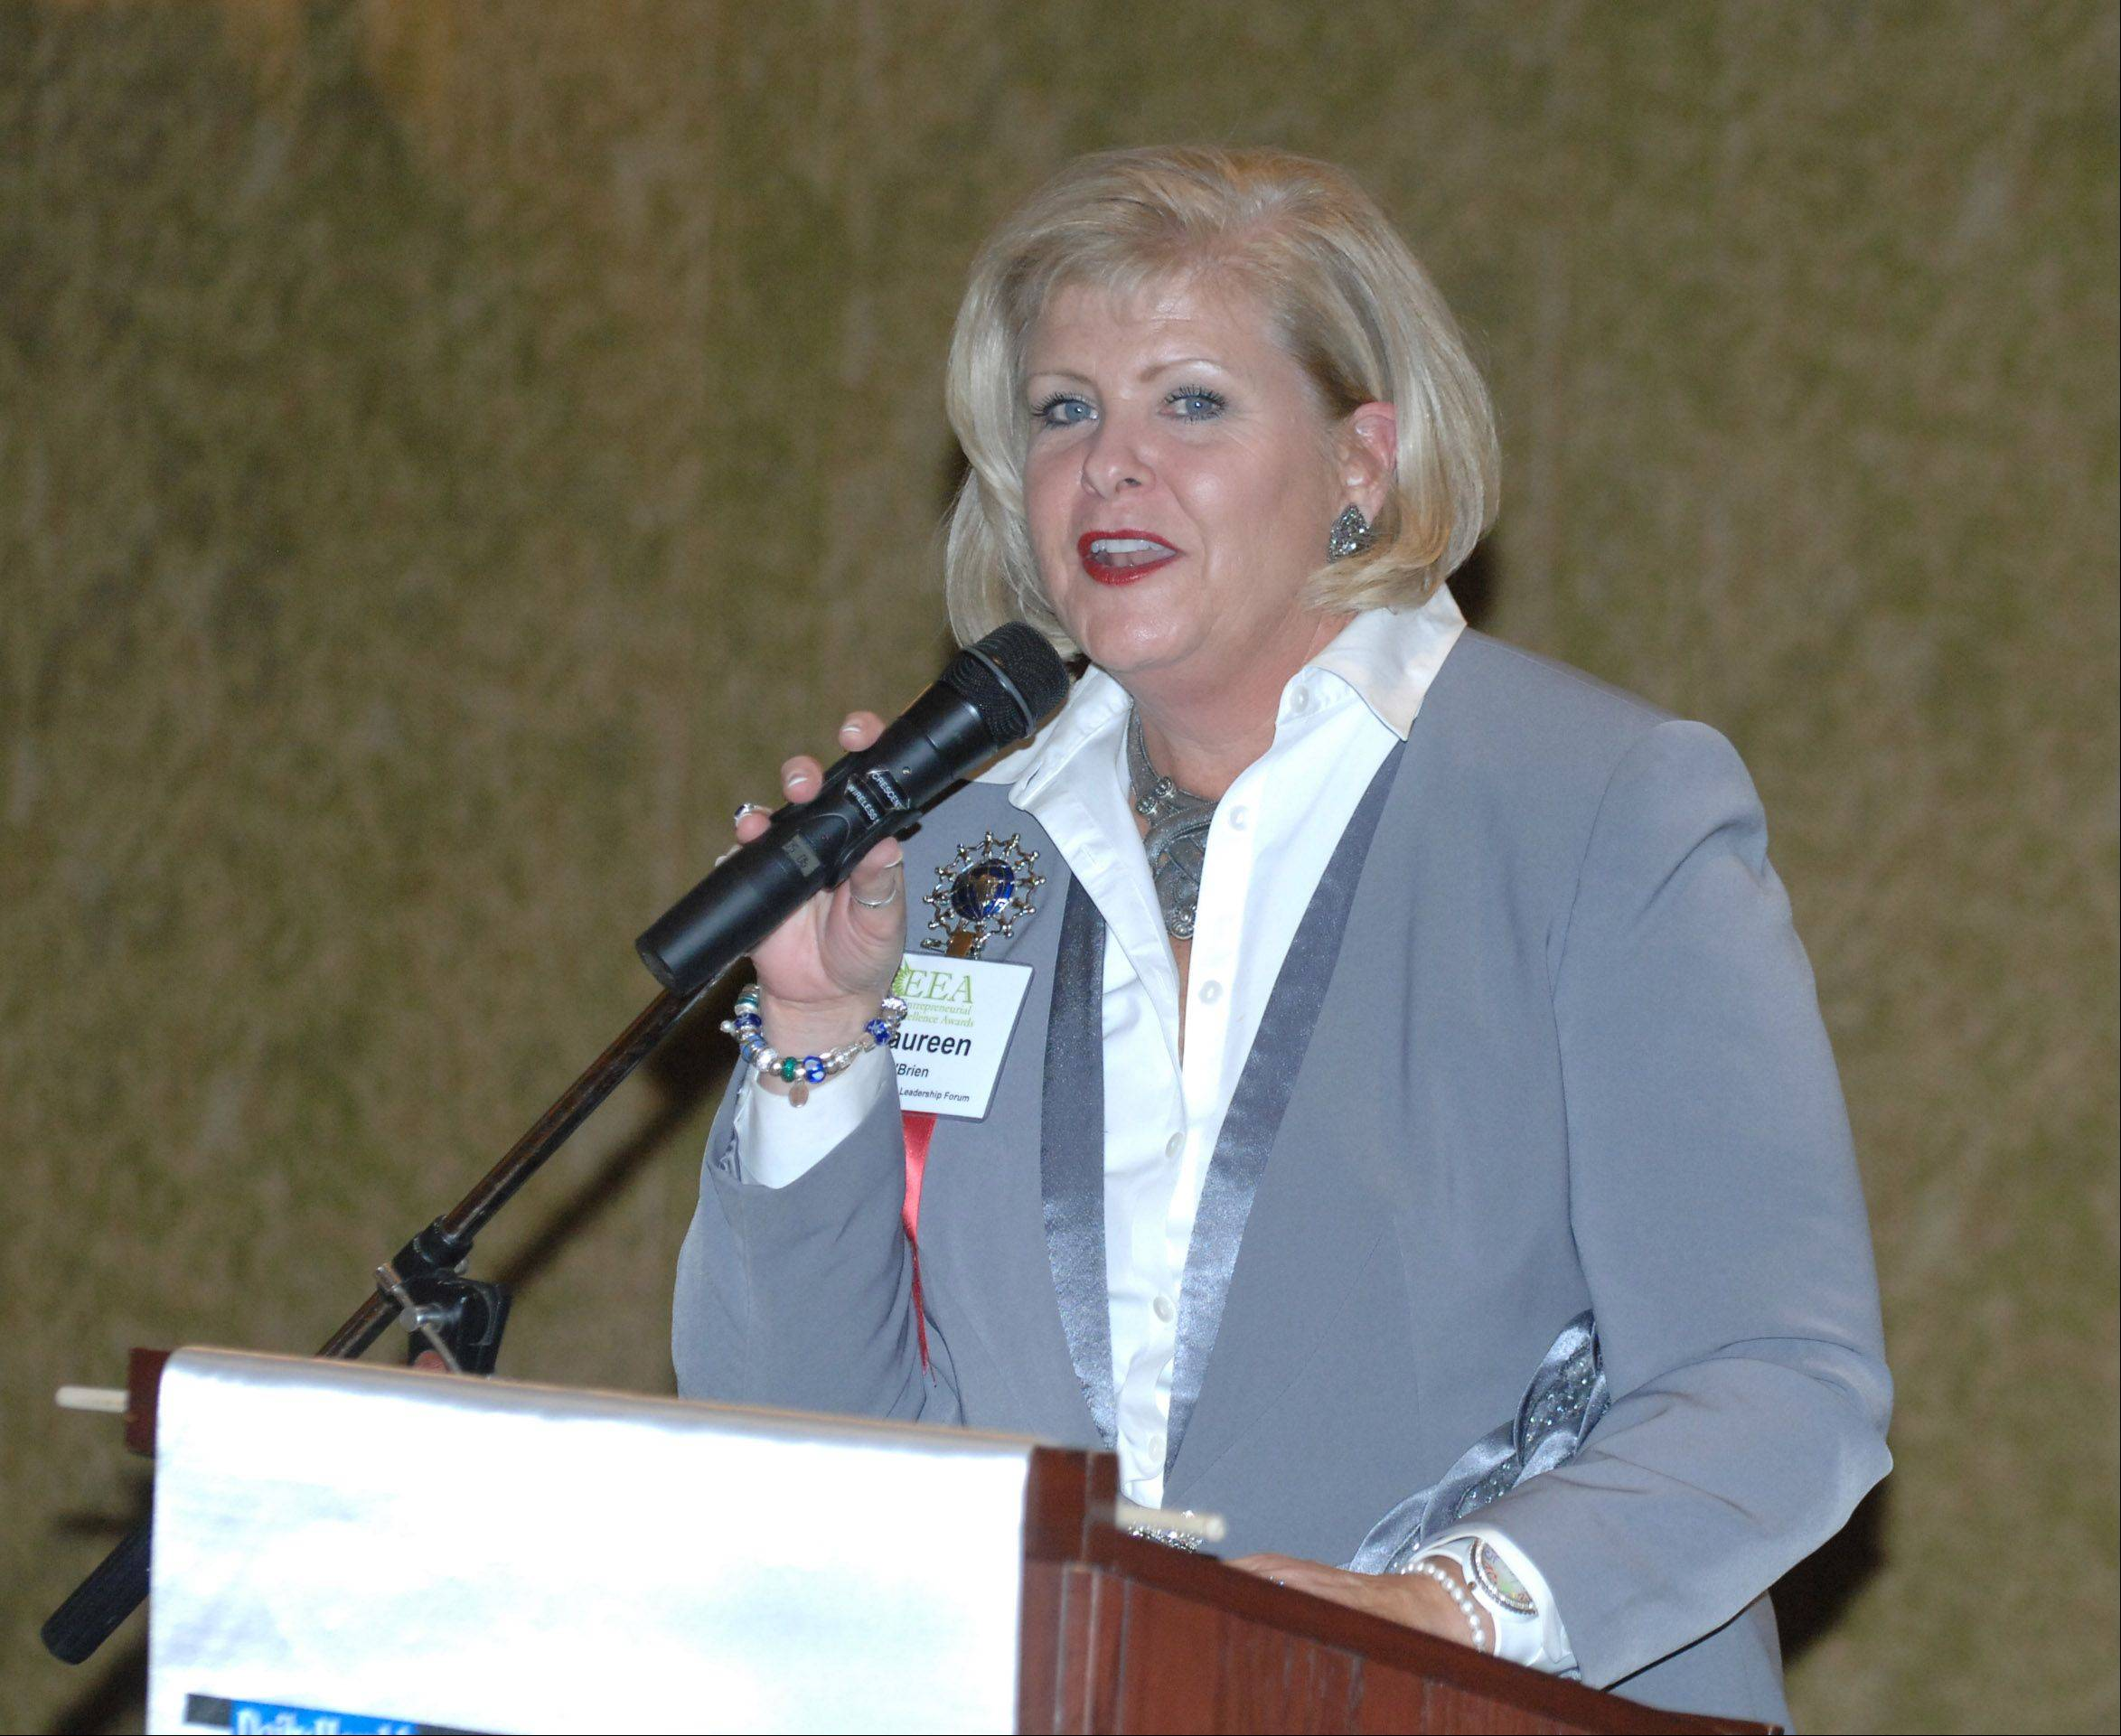 Maureen O'Brien of Global Women's Leadership Forum, Batavia gives thaks for being honored with the Early Satge award during the 13th Annual Entrepreneurial Excellence Awards at Medinah Banquets in Addison Thursday.